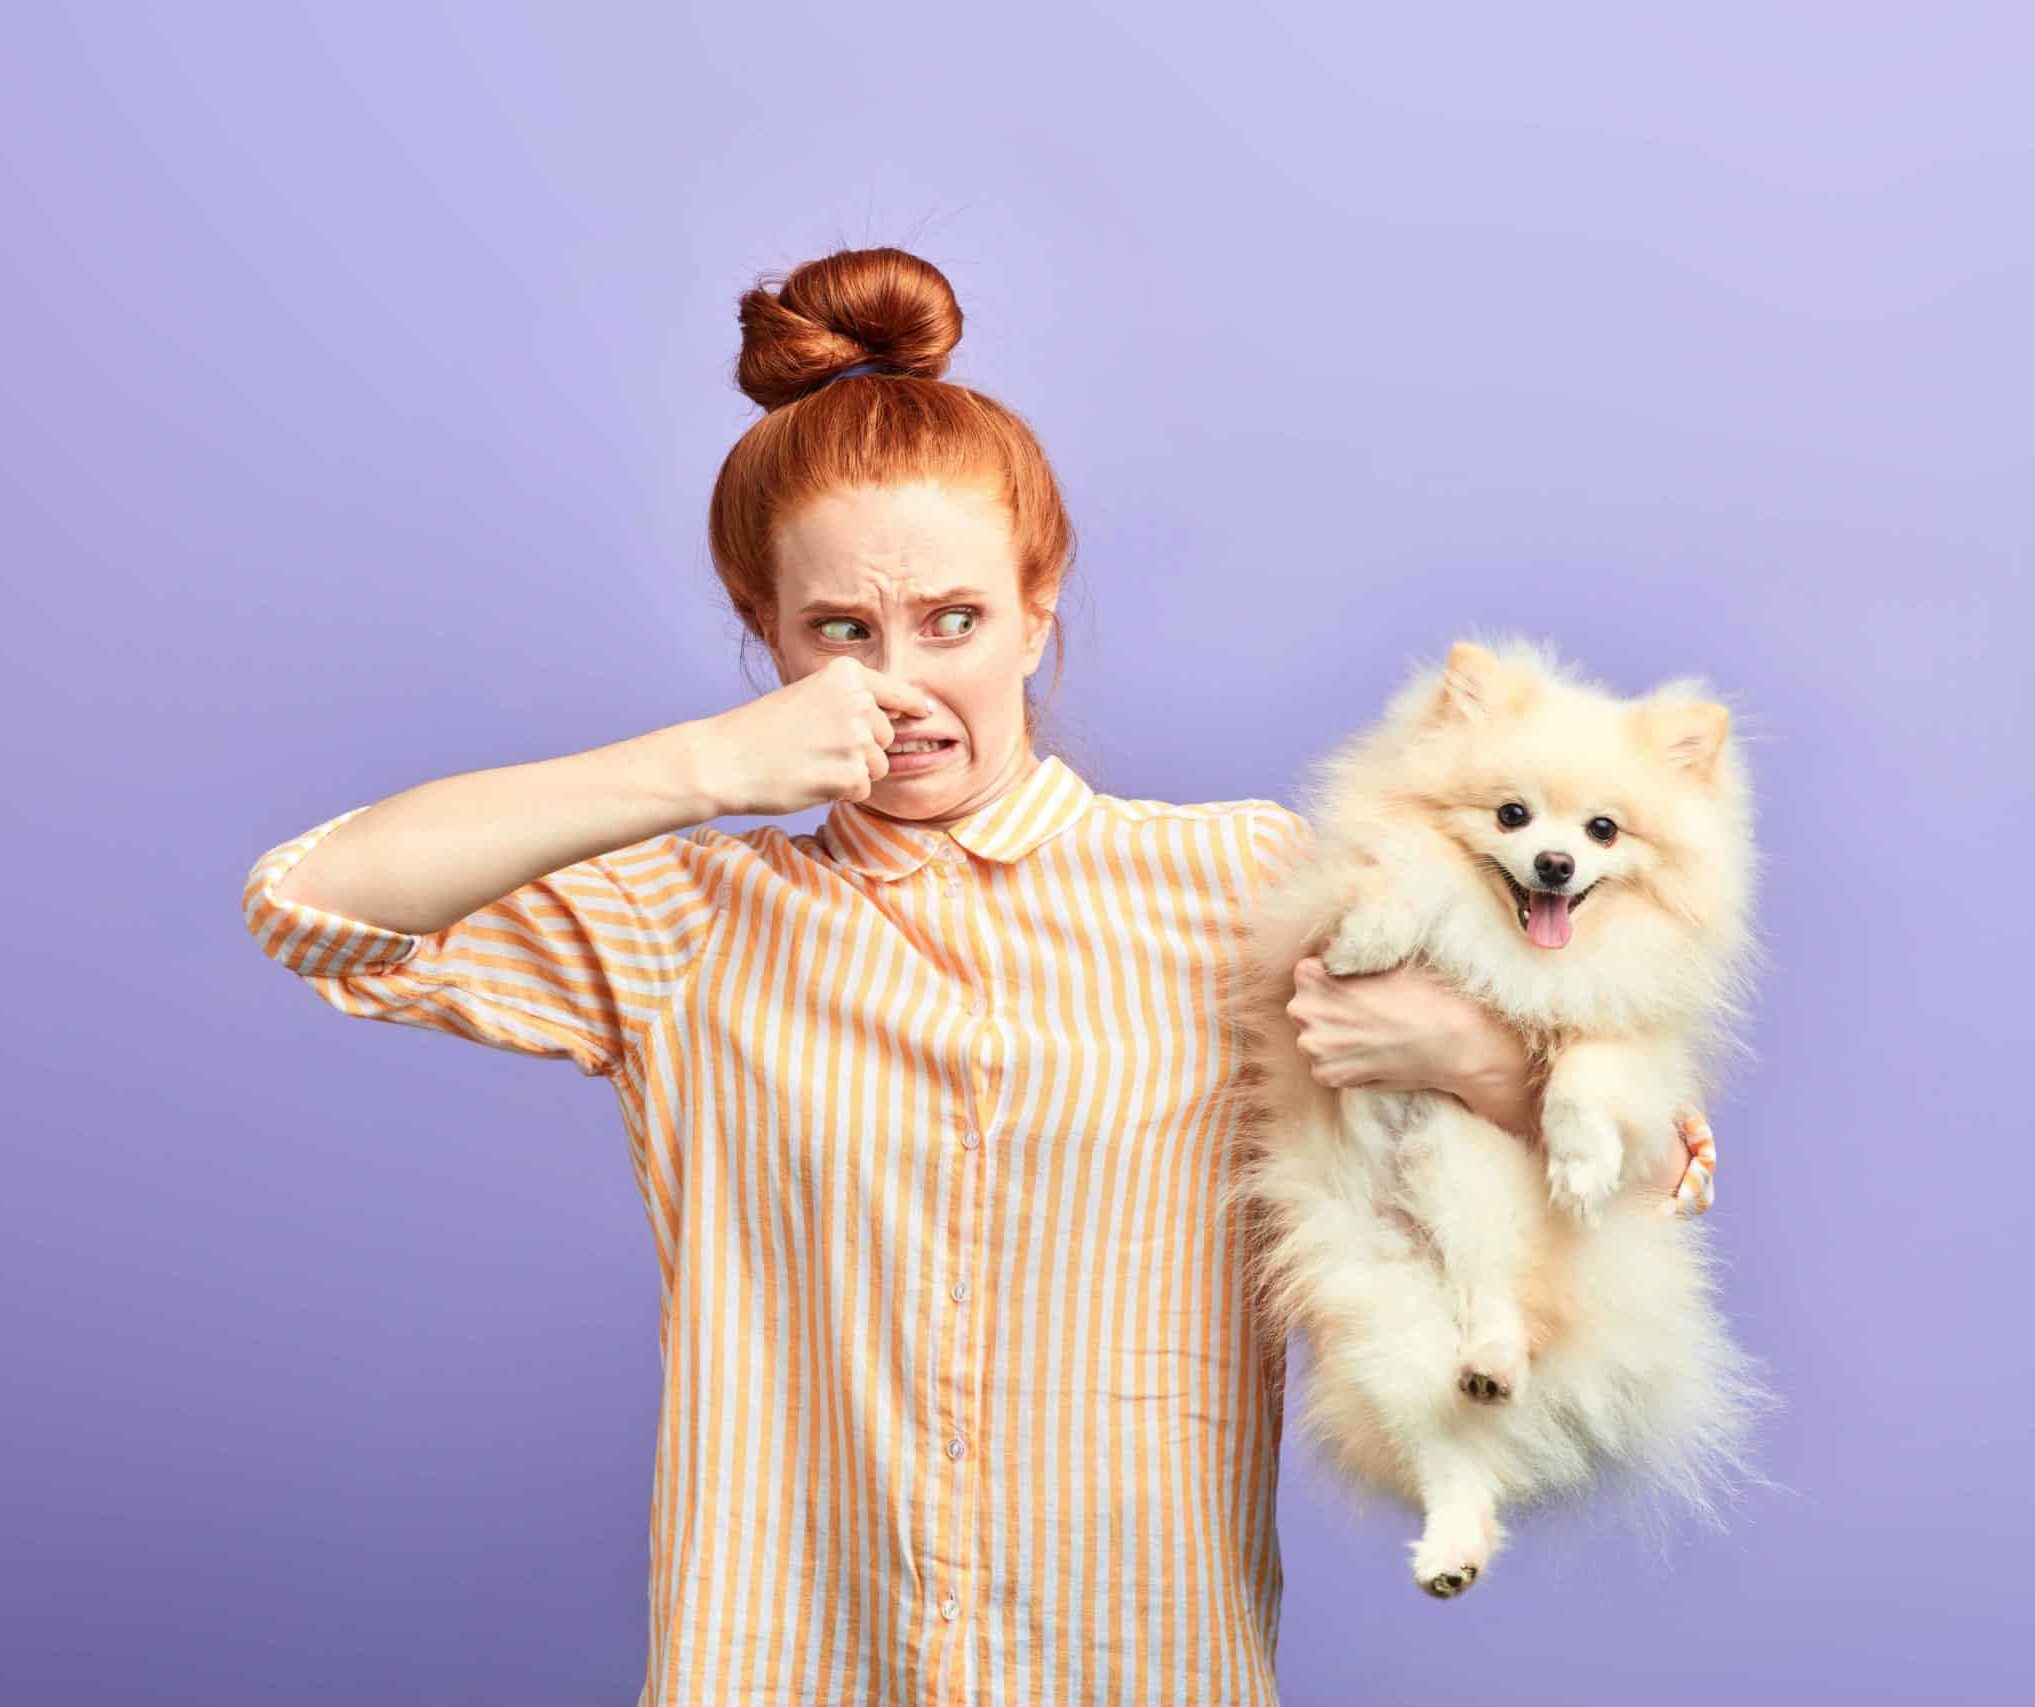 Woman holds smelly Pomeranian. Dogs that smell bad may need to see the vet. Bad odors can be caused by food allergies, dental problems, or other health conditions.